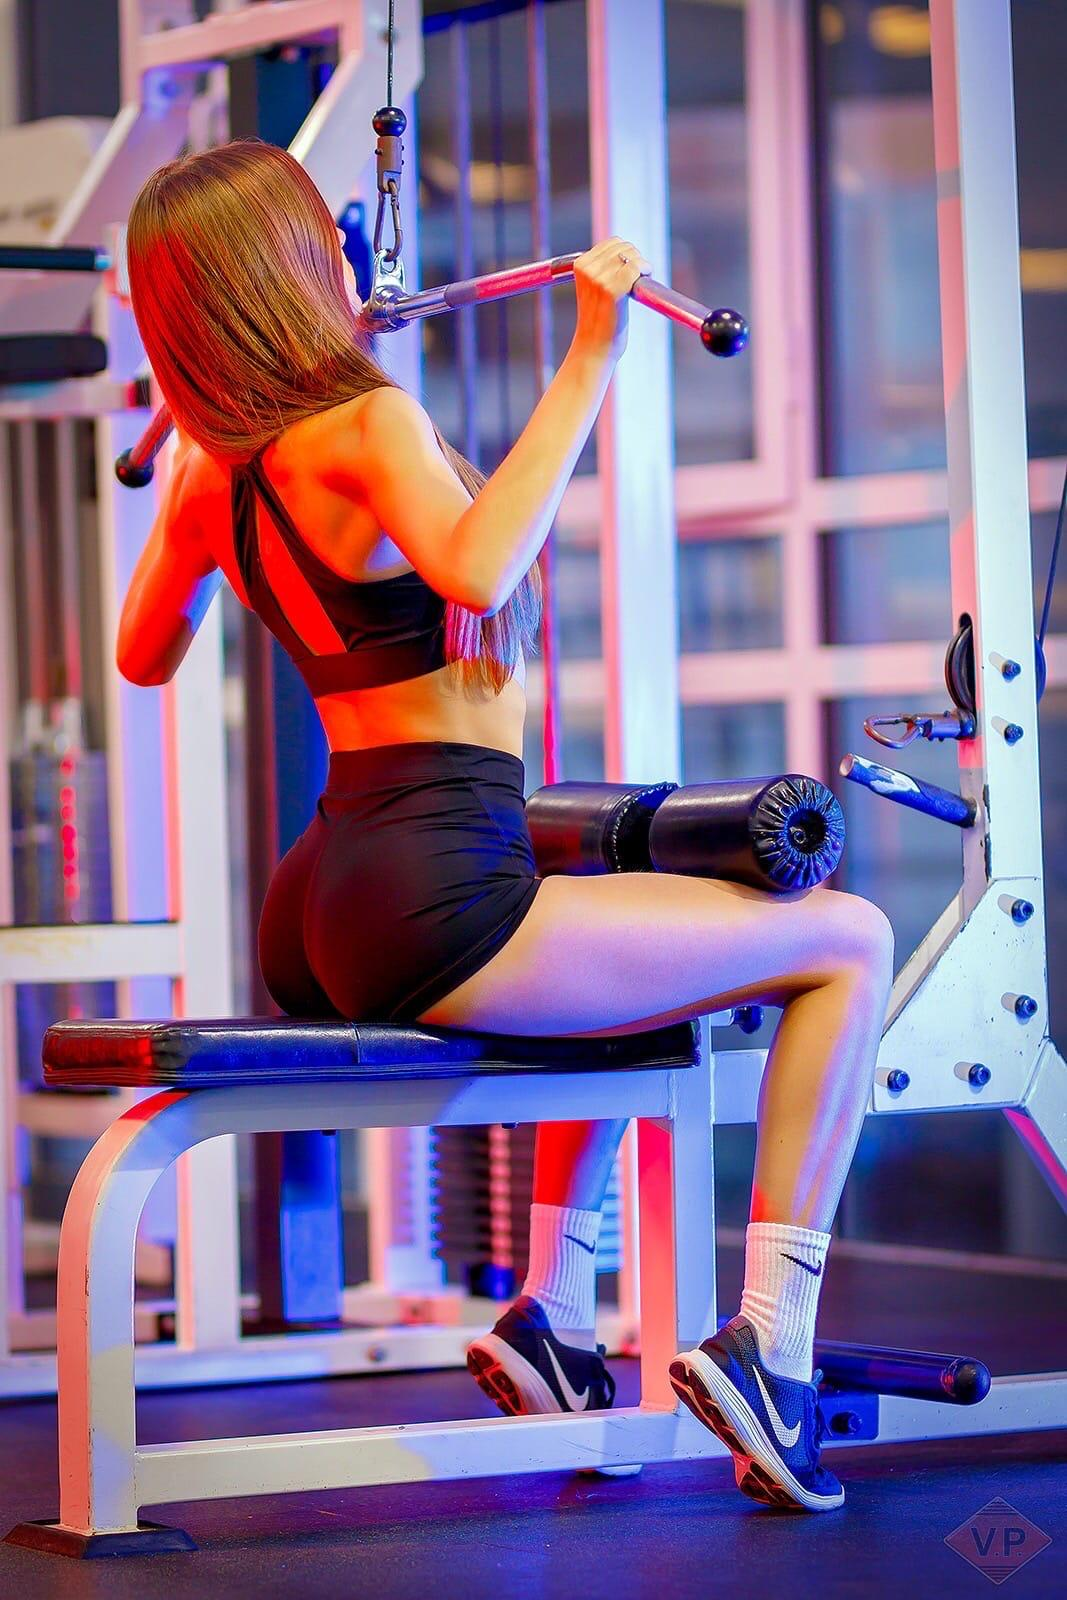 Picture with tags: HD, fitness, Girls, training, Sport, Video chat